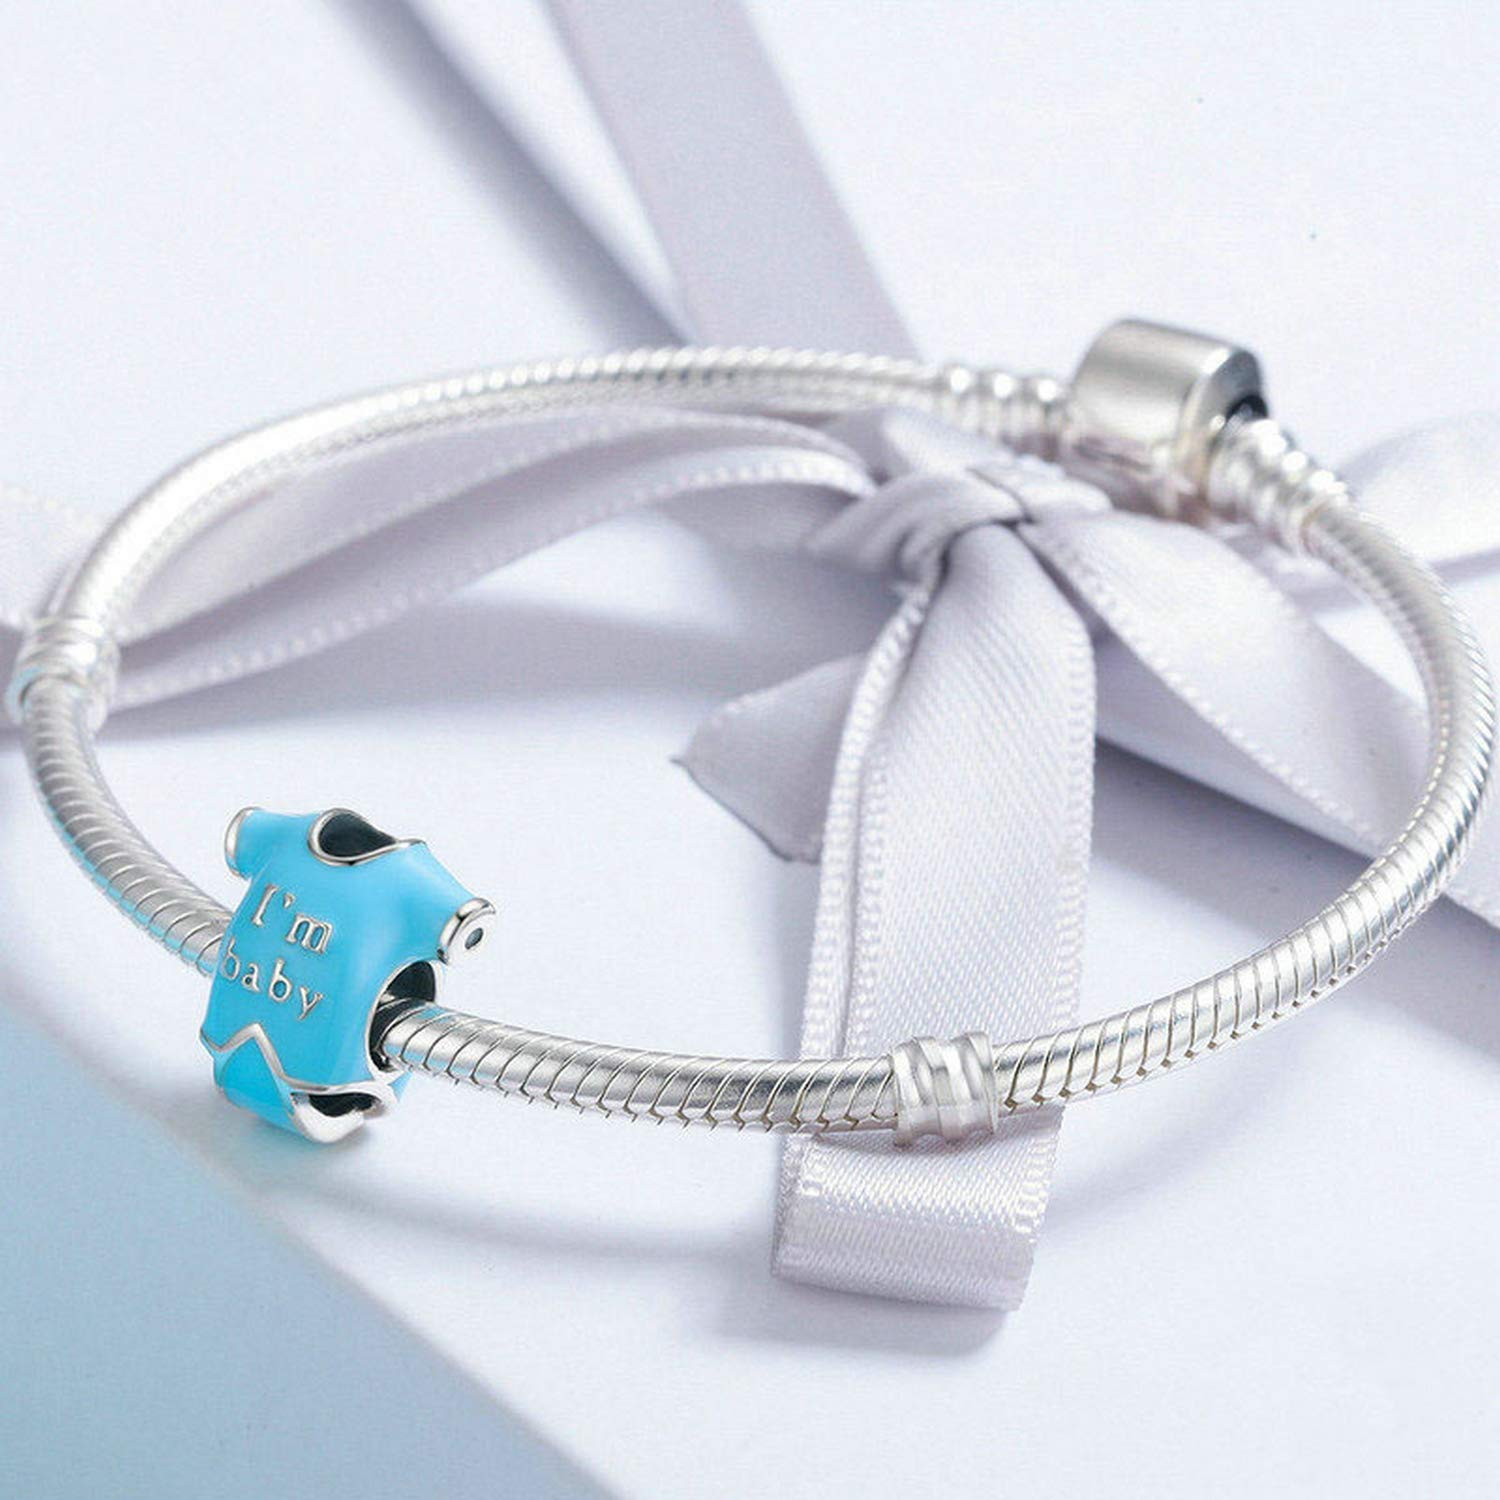 EverReena Beads Im Baby Cute Little Baby Shirt Blue Enamel for Silver Bracelets